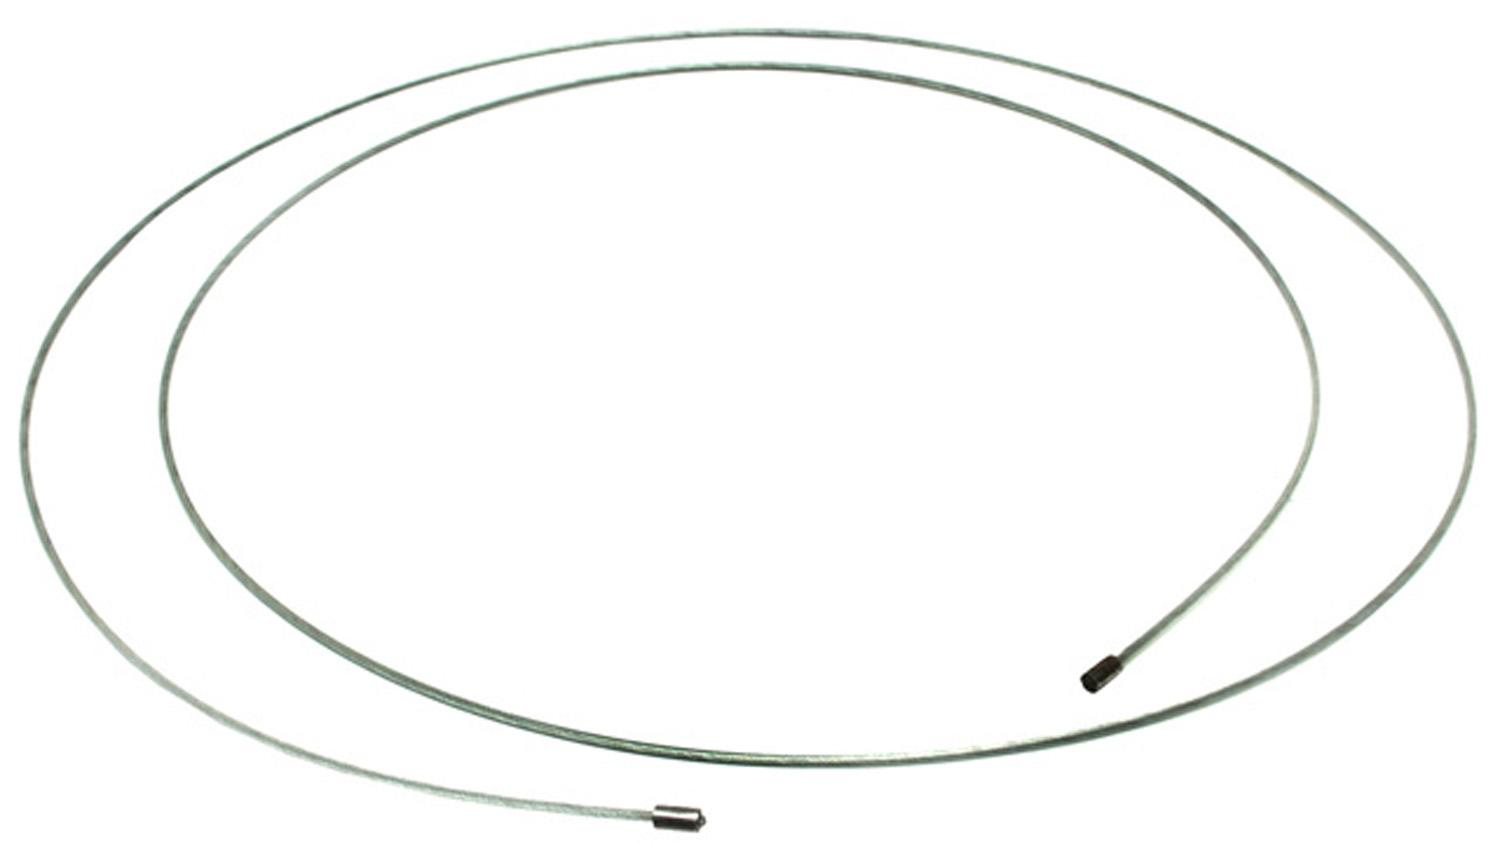 ACDELCO PROFESSIONAL BRAKES - Parking Brake Cable - ADU 18P276